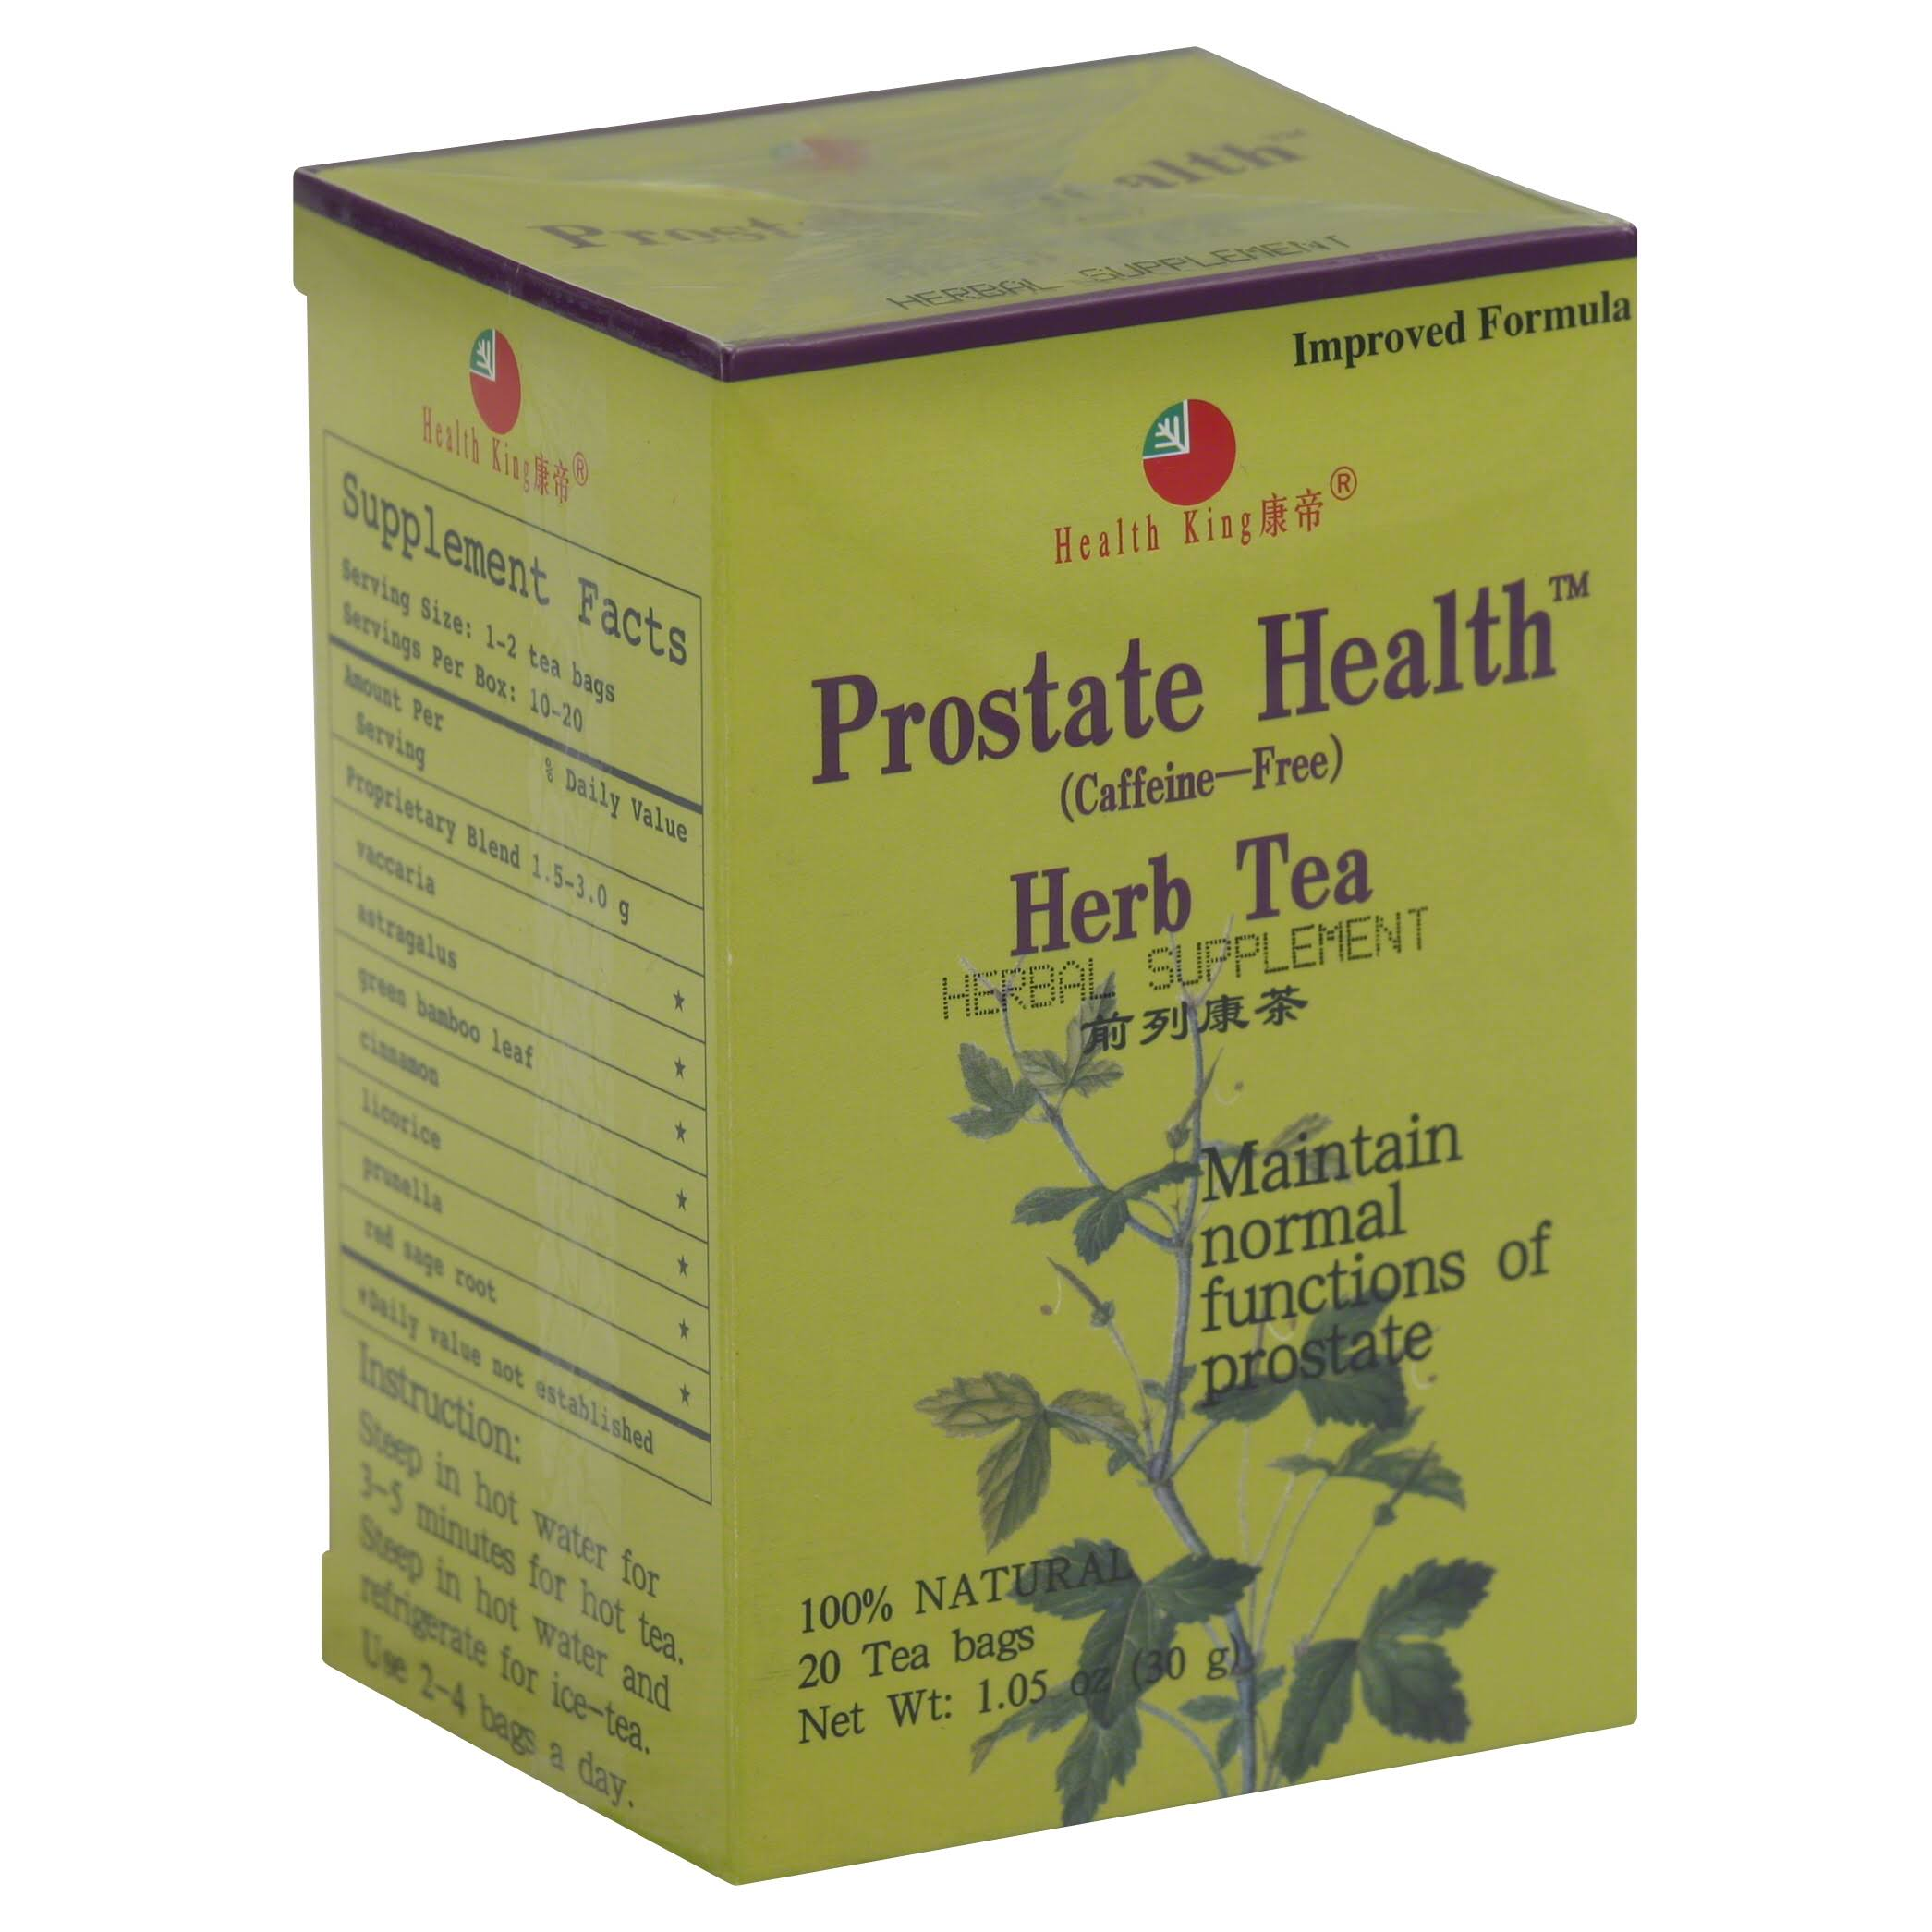 Health King Prostate Health Herb Tea